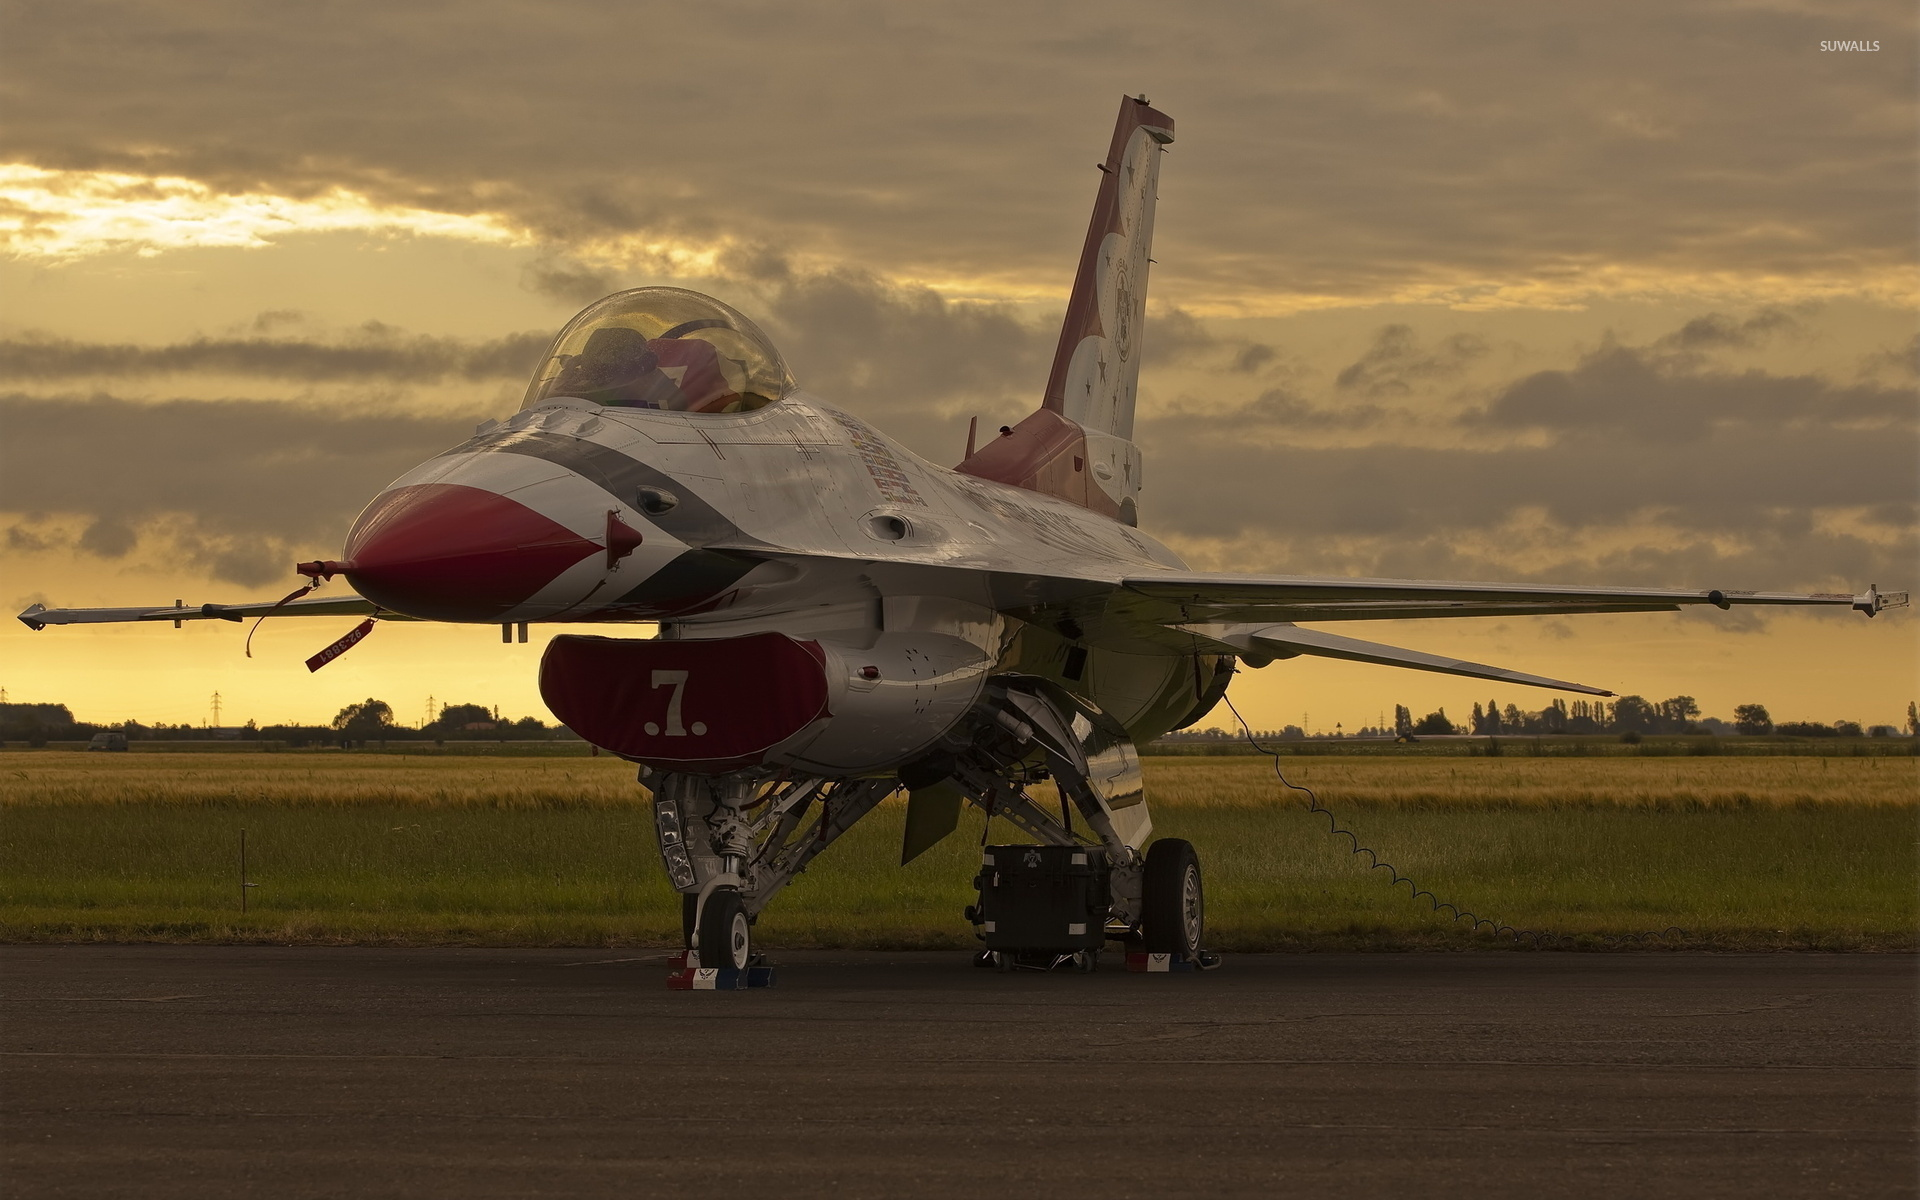 General Dynamics F-16 Fighting Falcon At Sunset Wallpaper